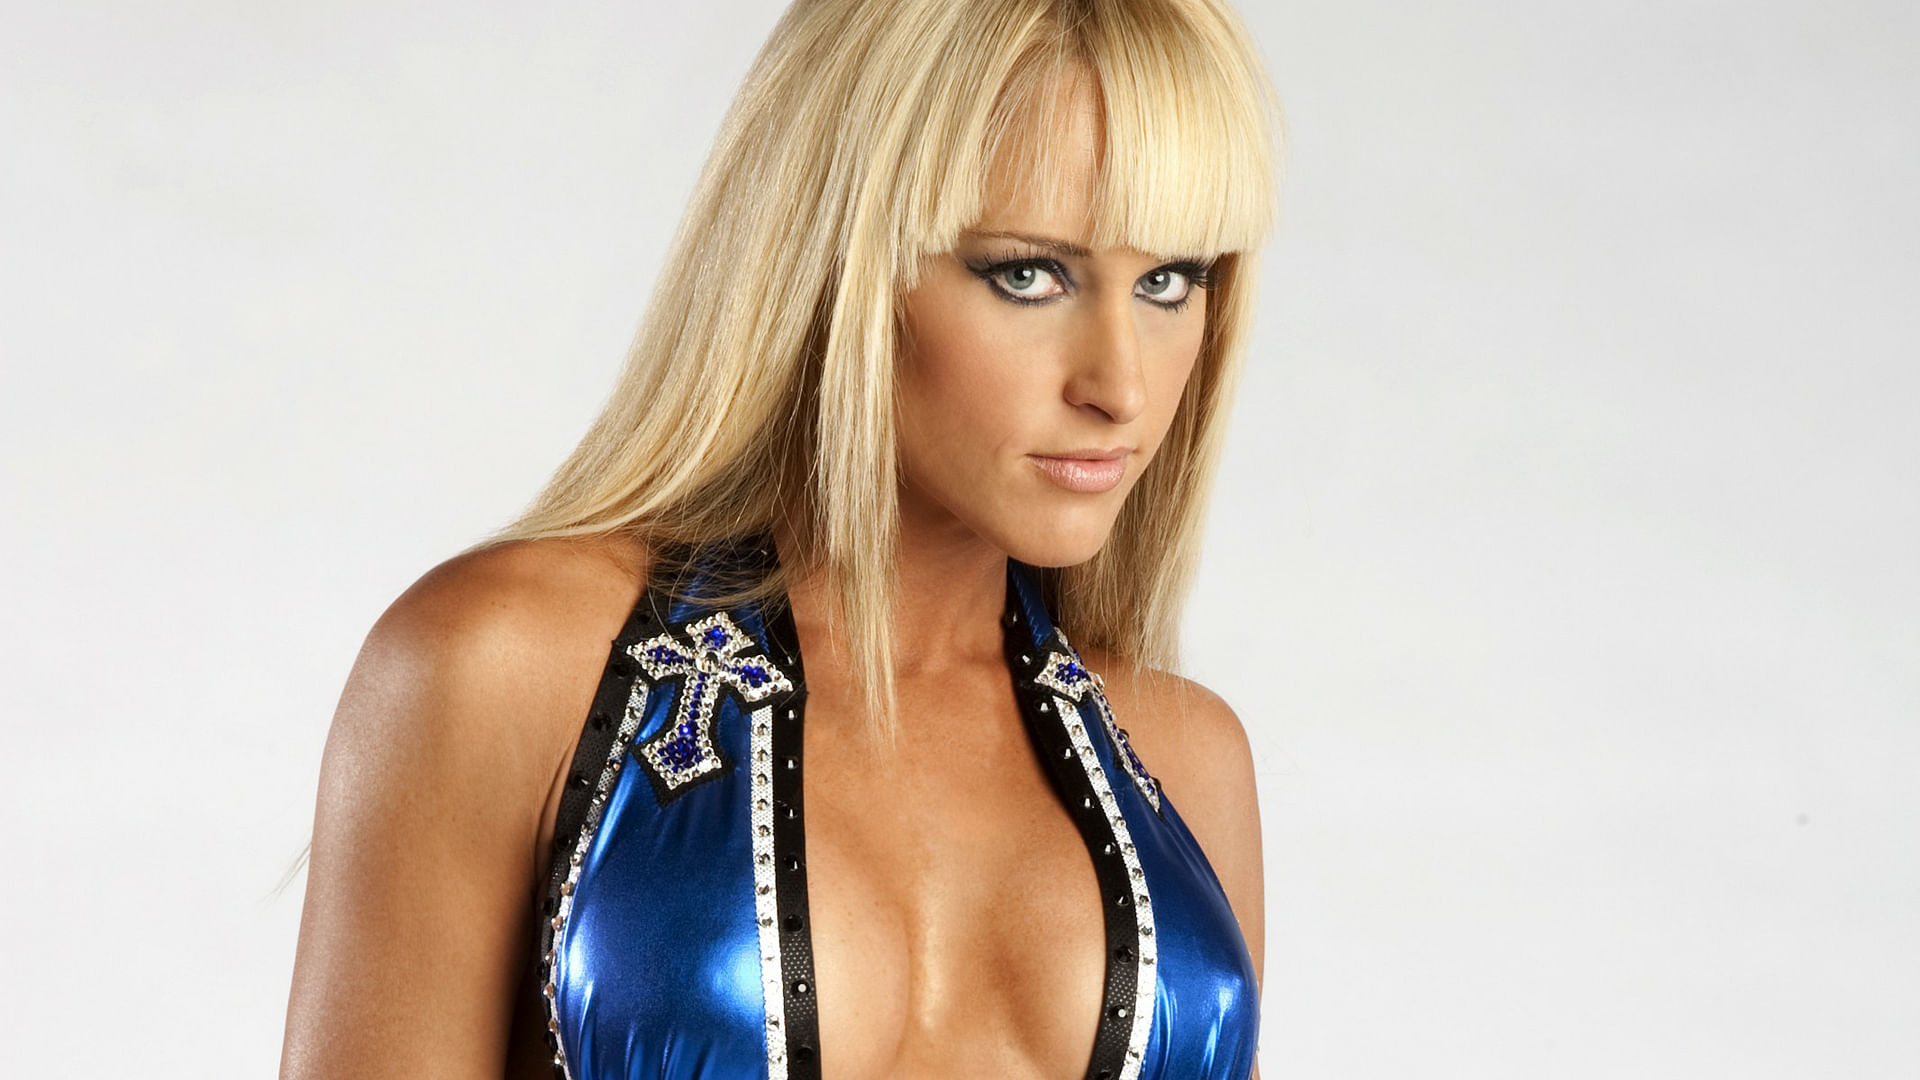 Tits michelle mccool has a boob job get much better